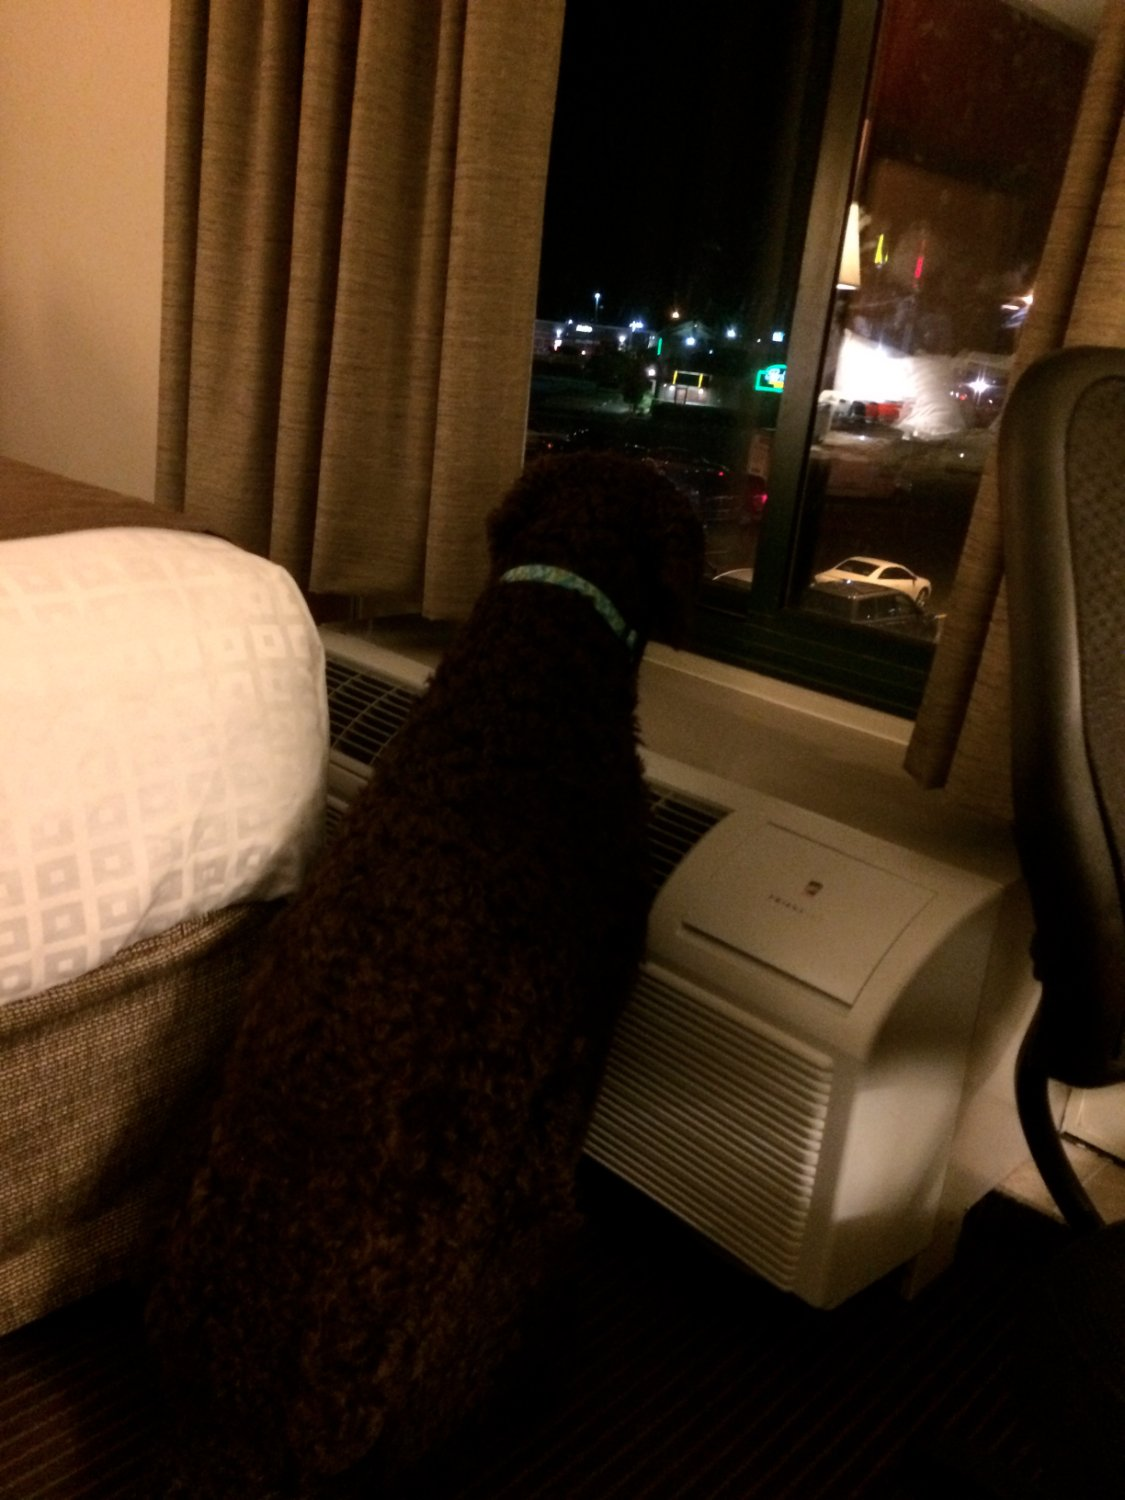 My dog looks at the view out the motel room window.